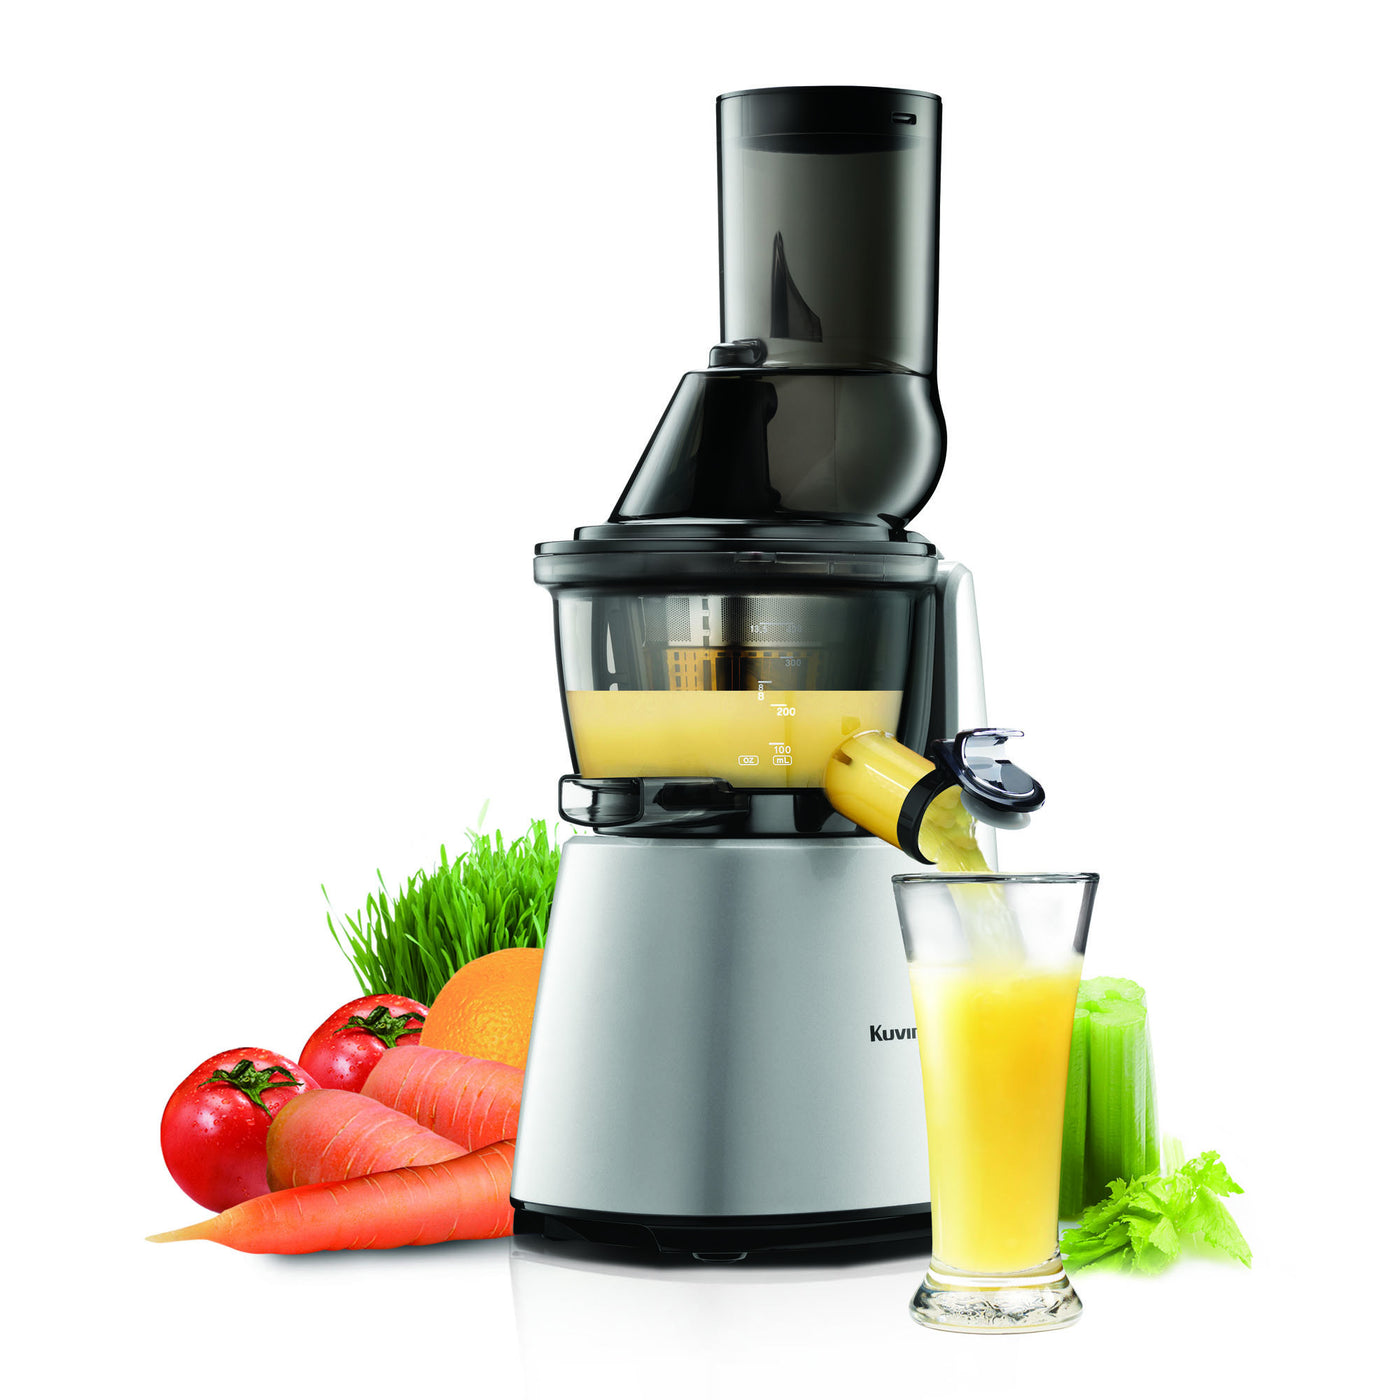 Kuvings C7000 Whole Slow Juicer : Kuvings Elite Whole Slow Juicer C7000 Juicerville